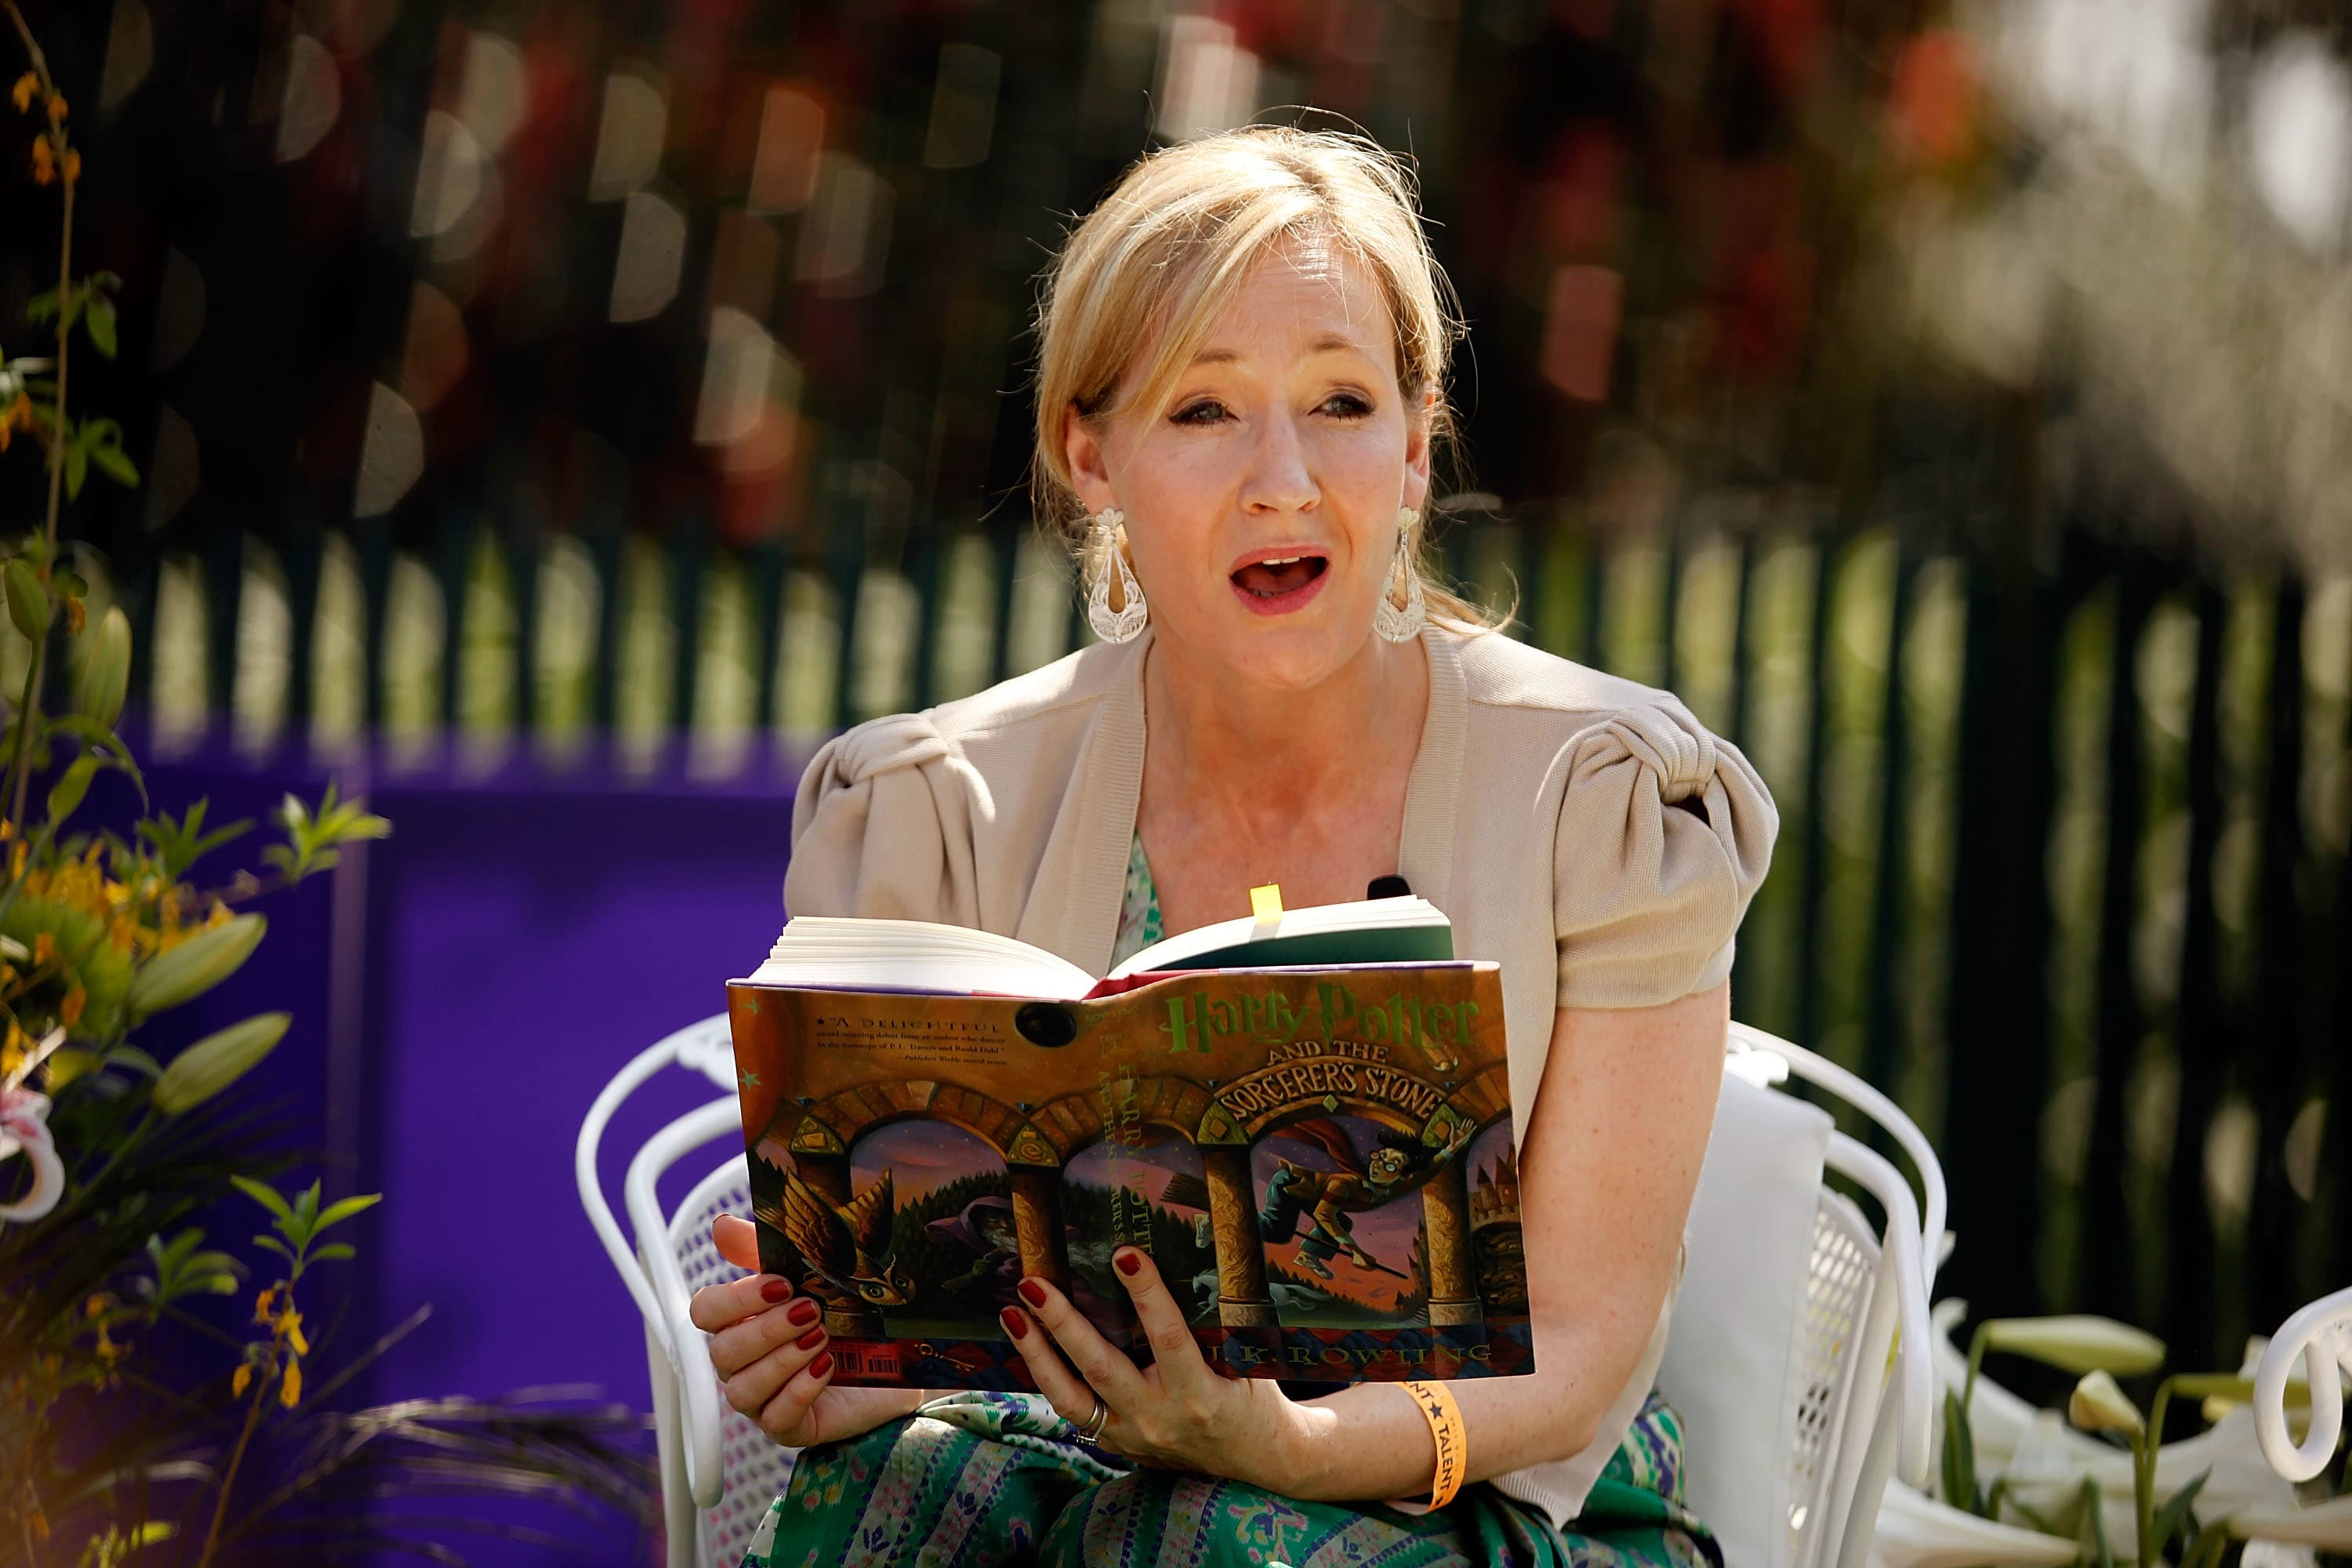 Harry Potter book purchased for $1 just sold for nearly $35,000—on J.K. Rowling's birthday